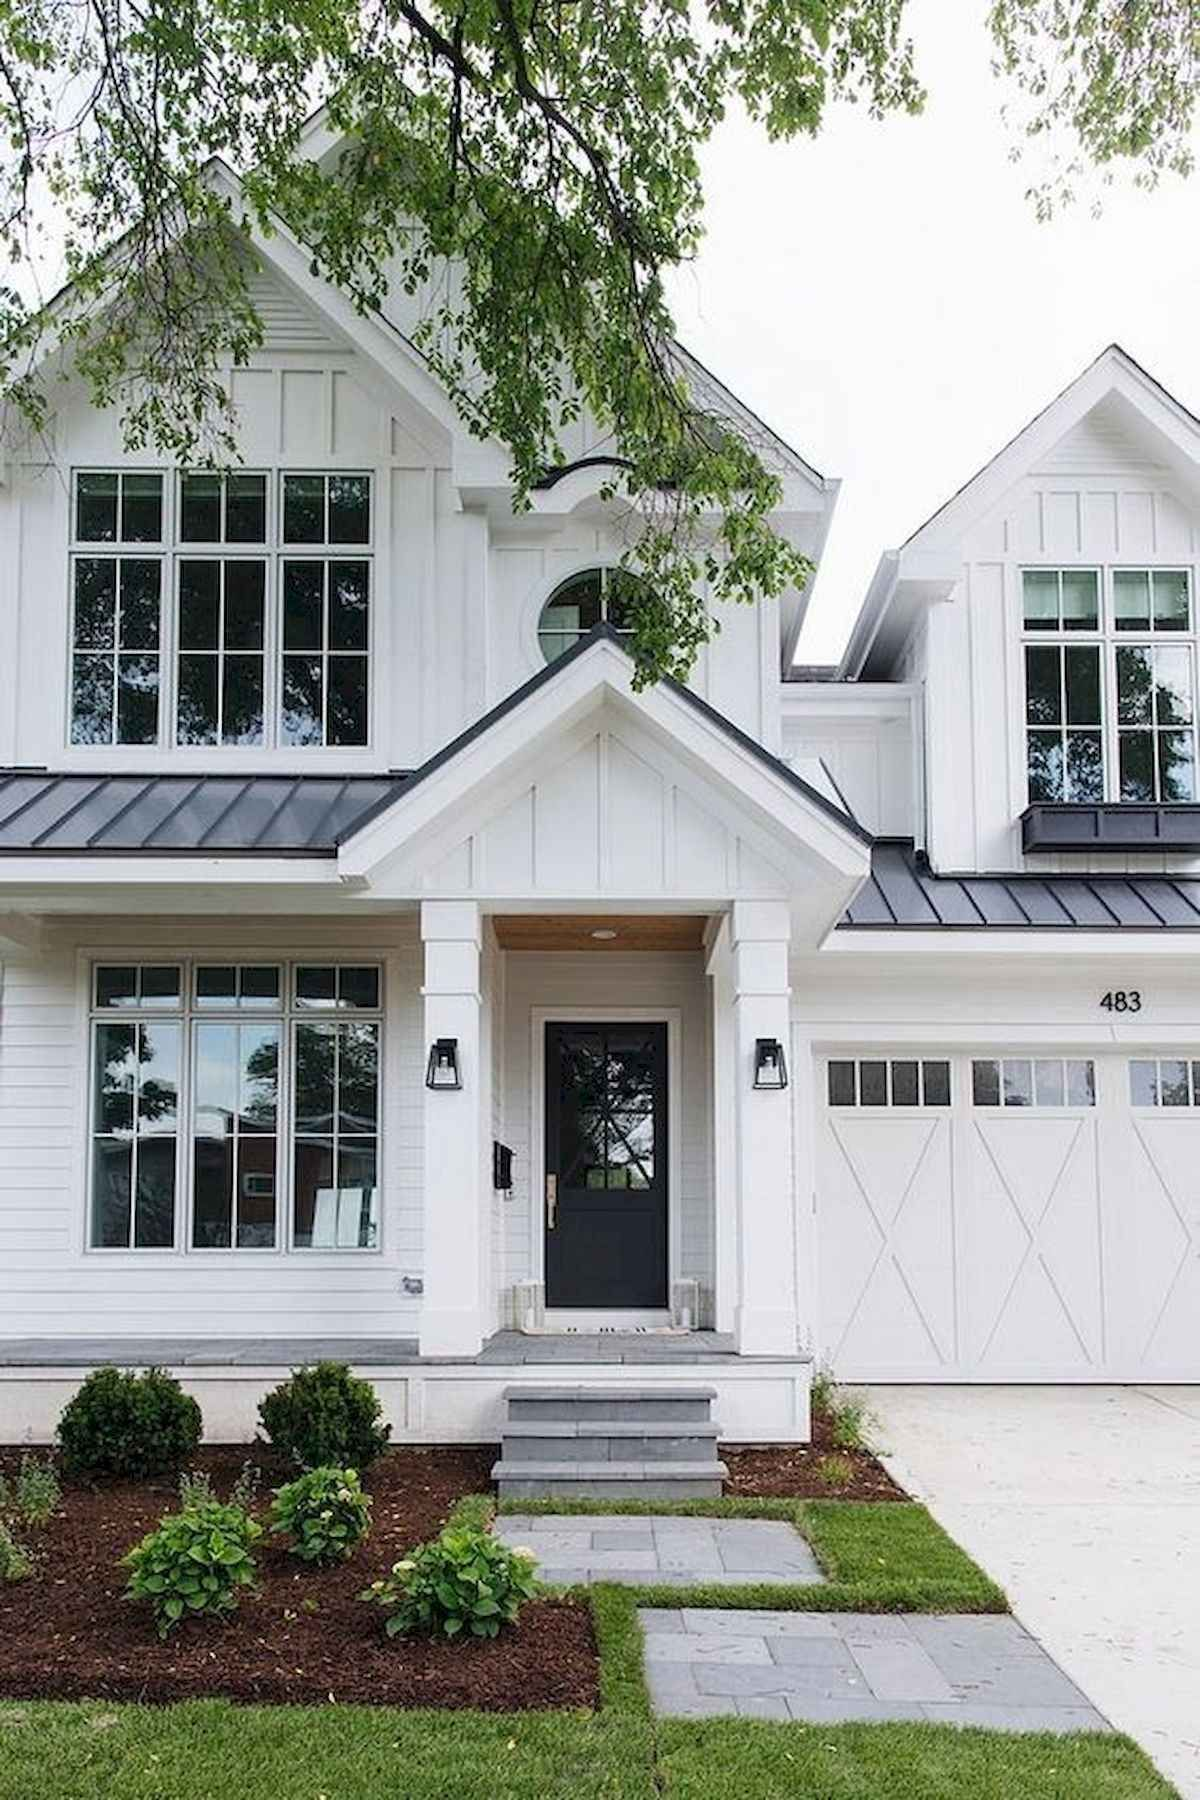 27 Modern Farmhouse Exterior Design Ideas For Stylish But Simple Look Ruang Harga Modern Farmhouse Exterior White Farmhouse Exterior Exterior House Colors